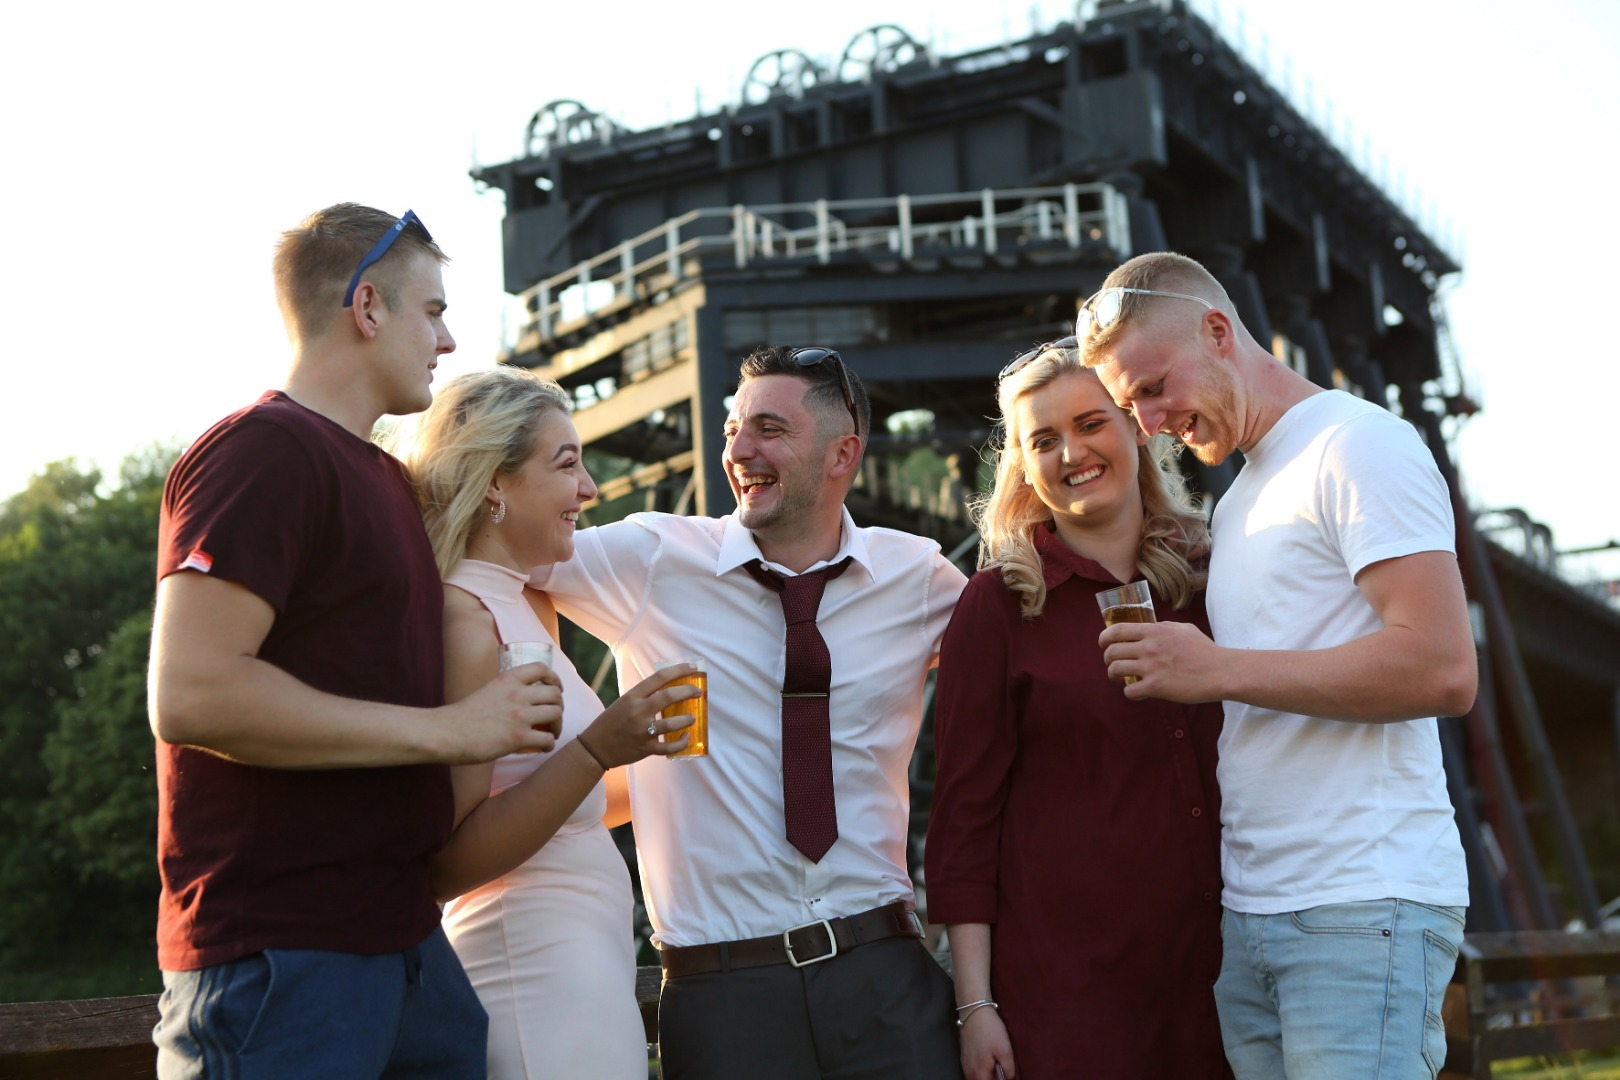 Seventh Annual Beer, Bands and Burgers Festival at Anderton Boat Lift